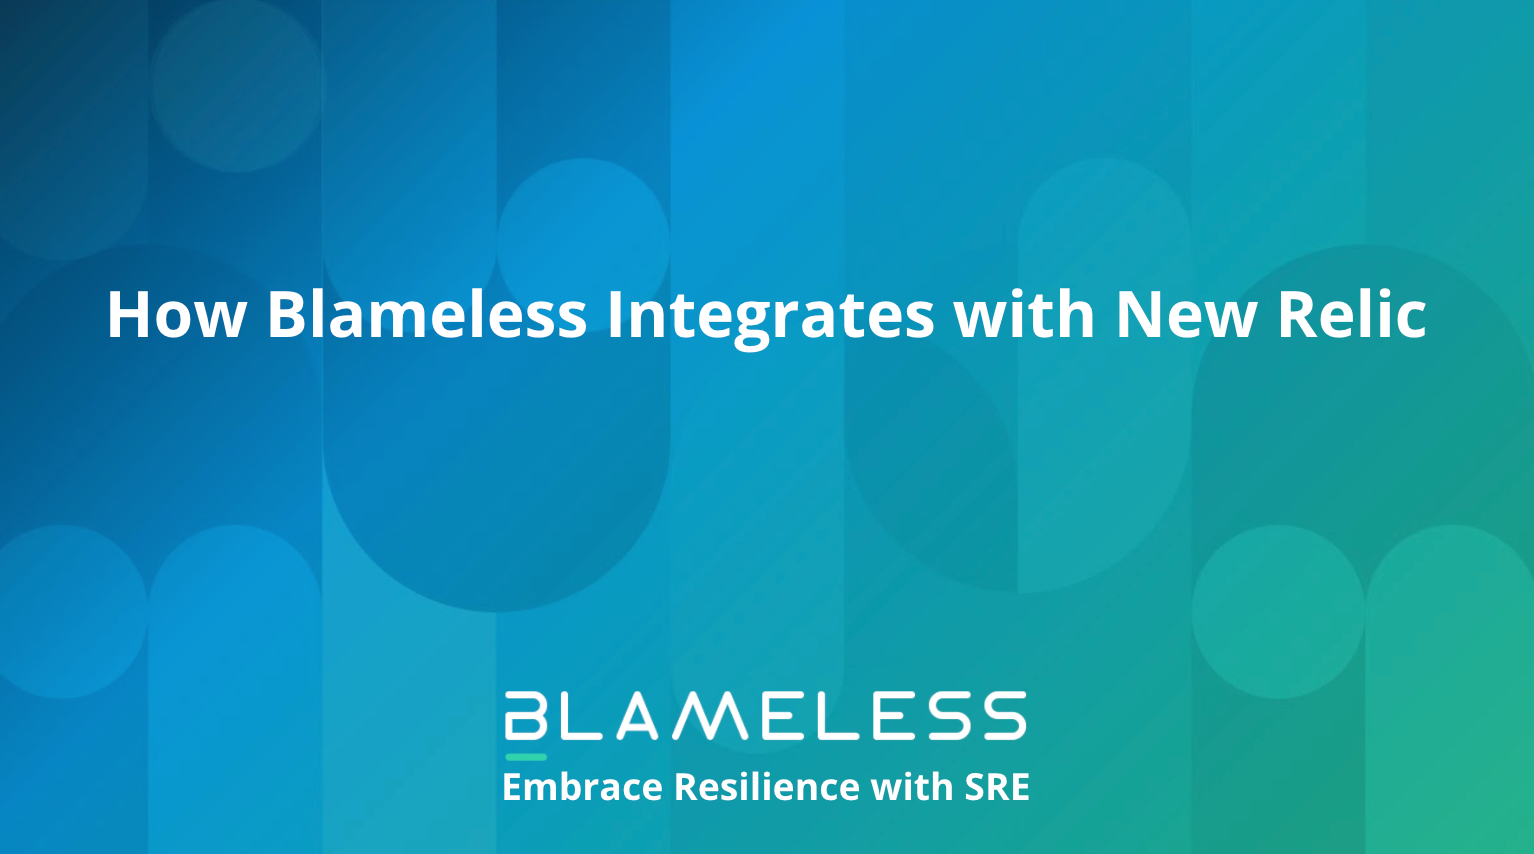 How Blameless Integrates with New Relic